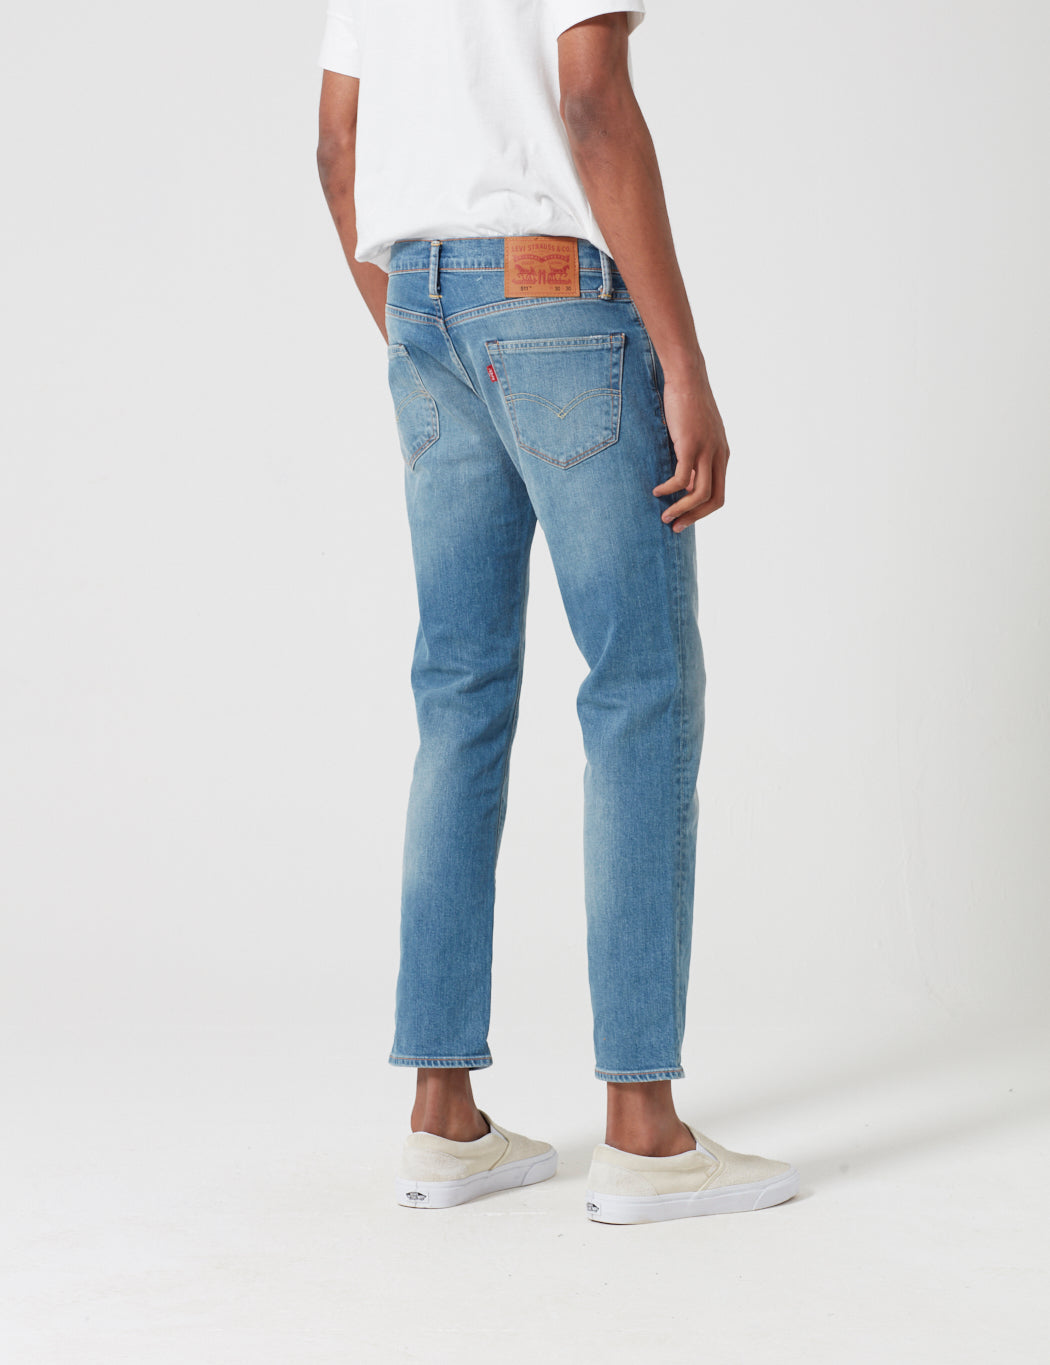 4d3307d8957 Levis 511 Jeans (Slim) - Harbour Blue | URBAN EXCESS.